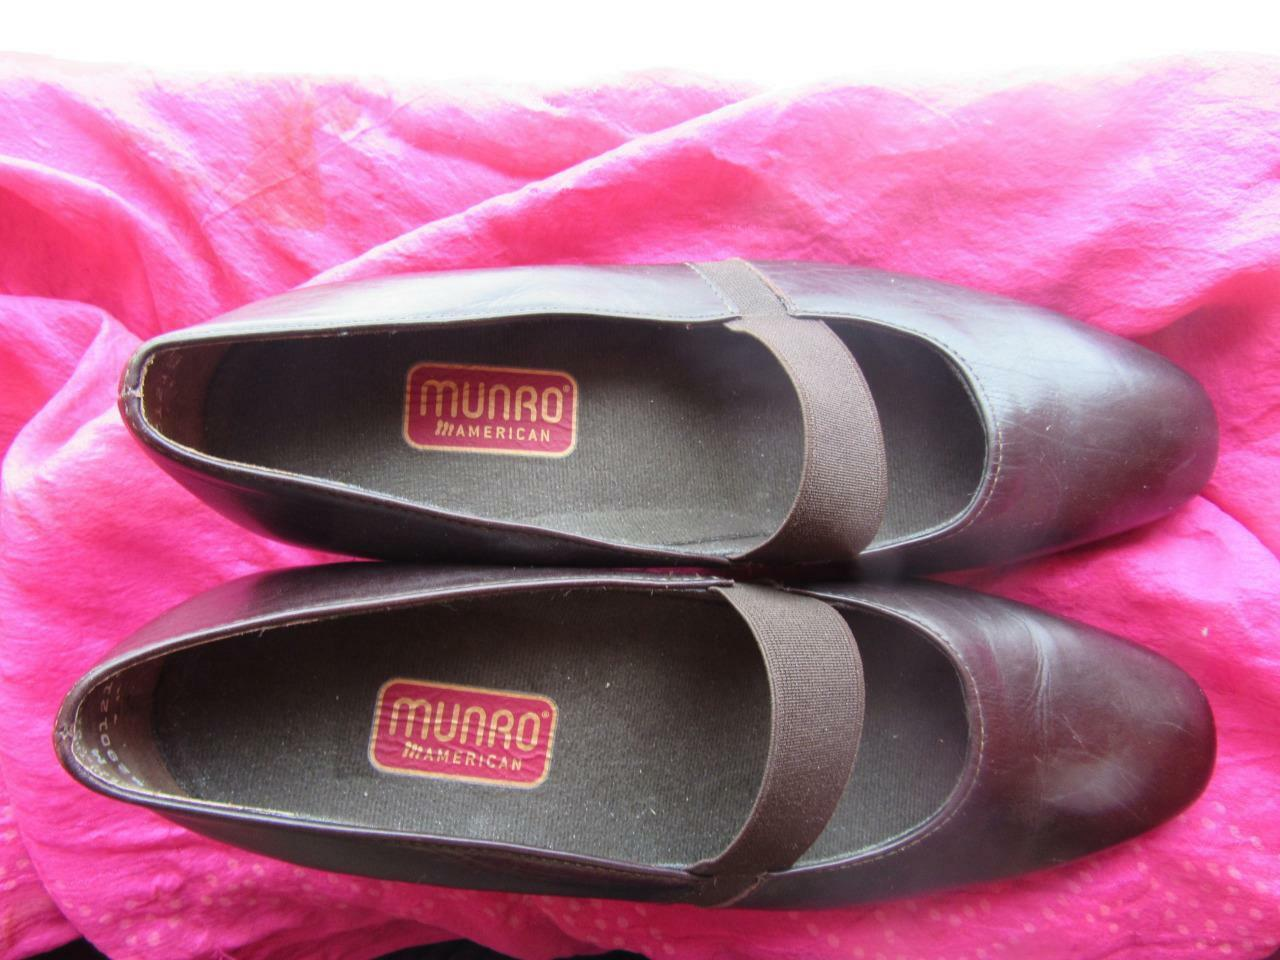 MUNRO SHOES BROWN LEATHER MARY SIZE JANES PUMPS W ELASTIC SIZE MARY 6.5 M/37 MADE IN USA 94994e